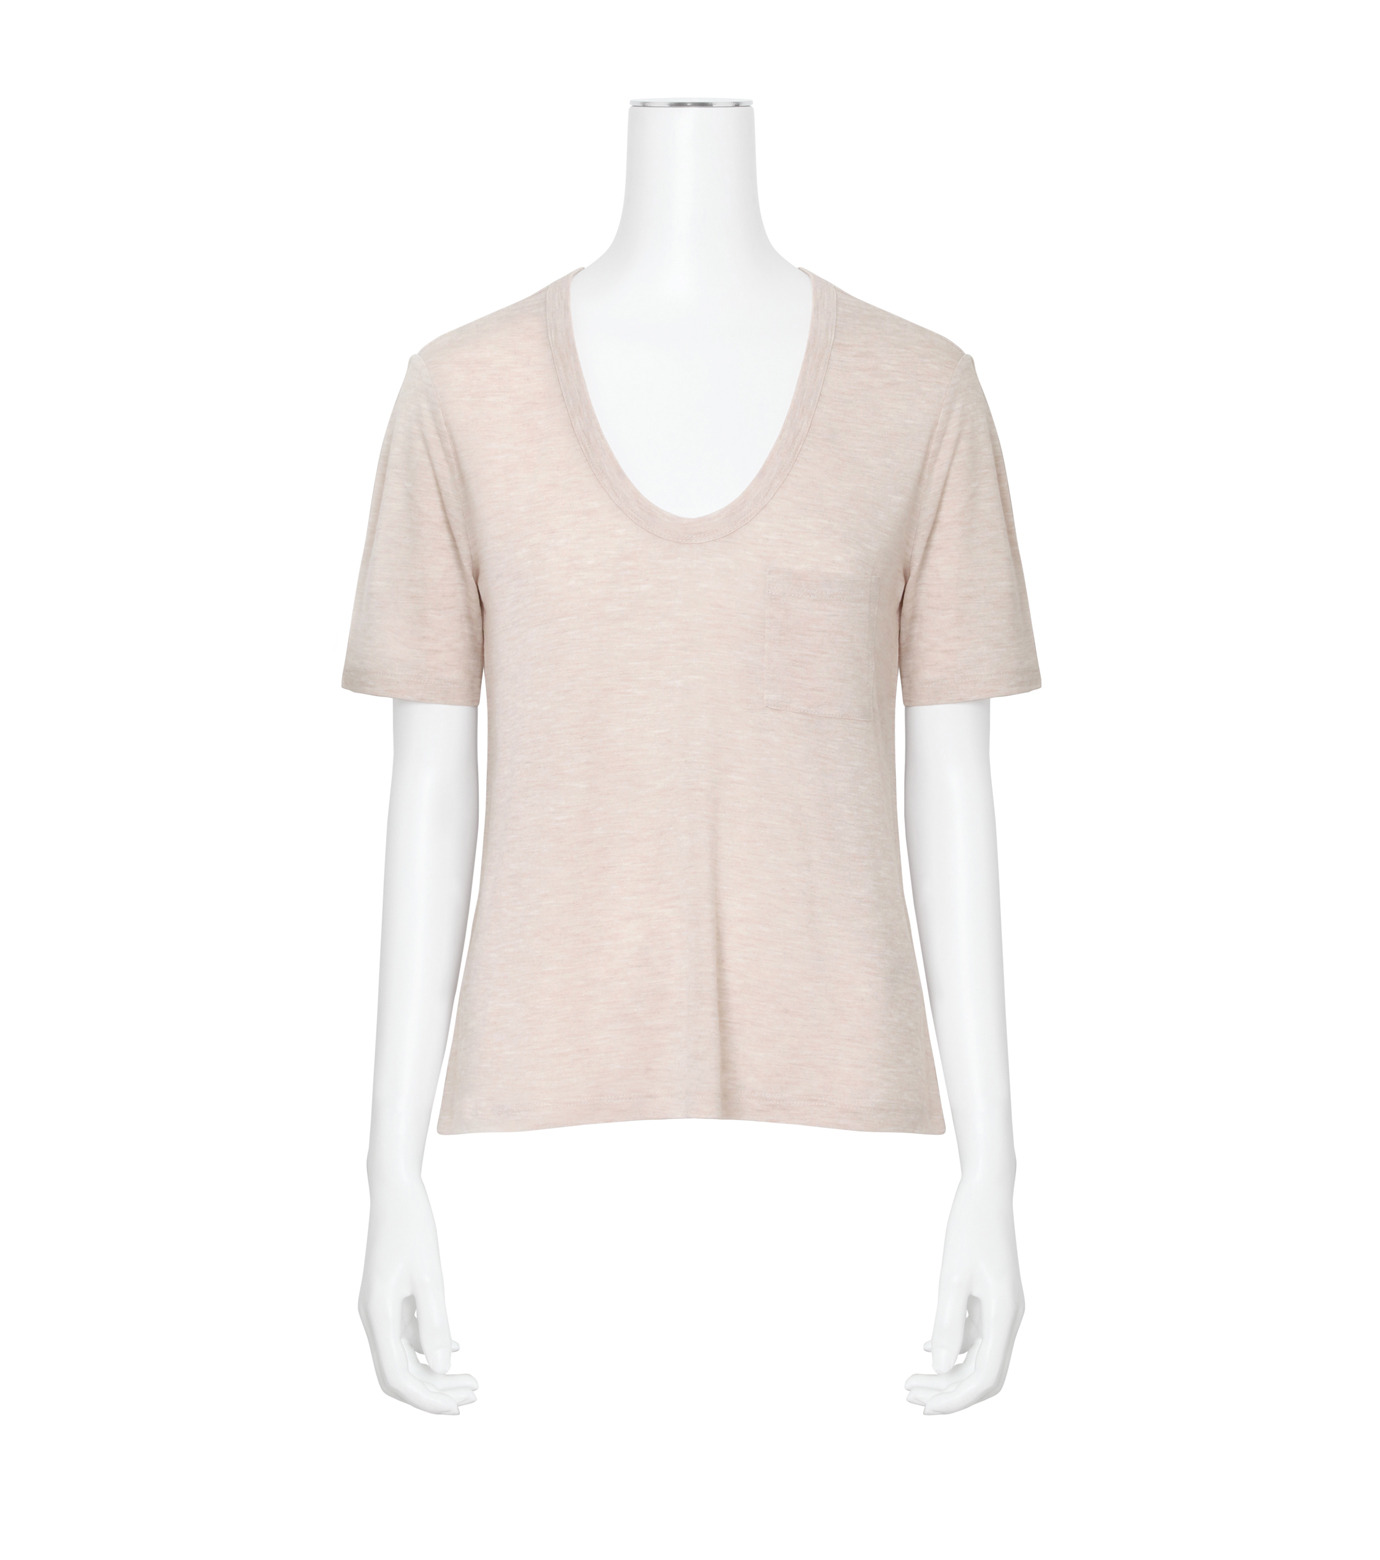 T by Alexander Wang(ティーバイ アレキサンダーワン)のCropped T w/Pkt-LIGHT PINK(カットソー/cut and sewn)-400203R17-71 拡大詳細画像1